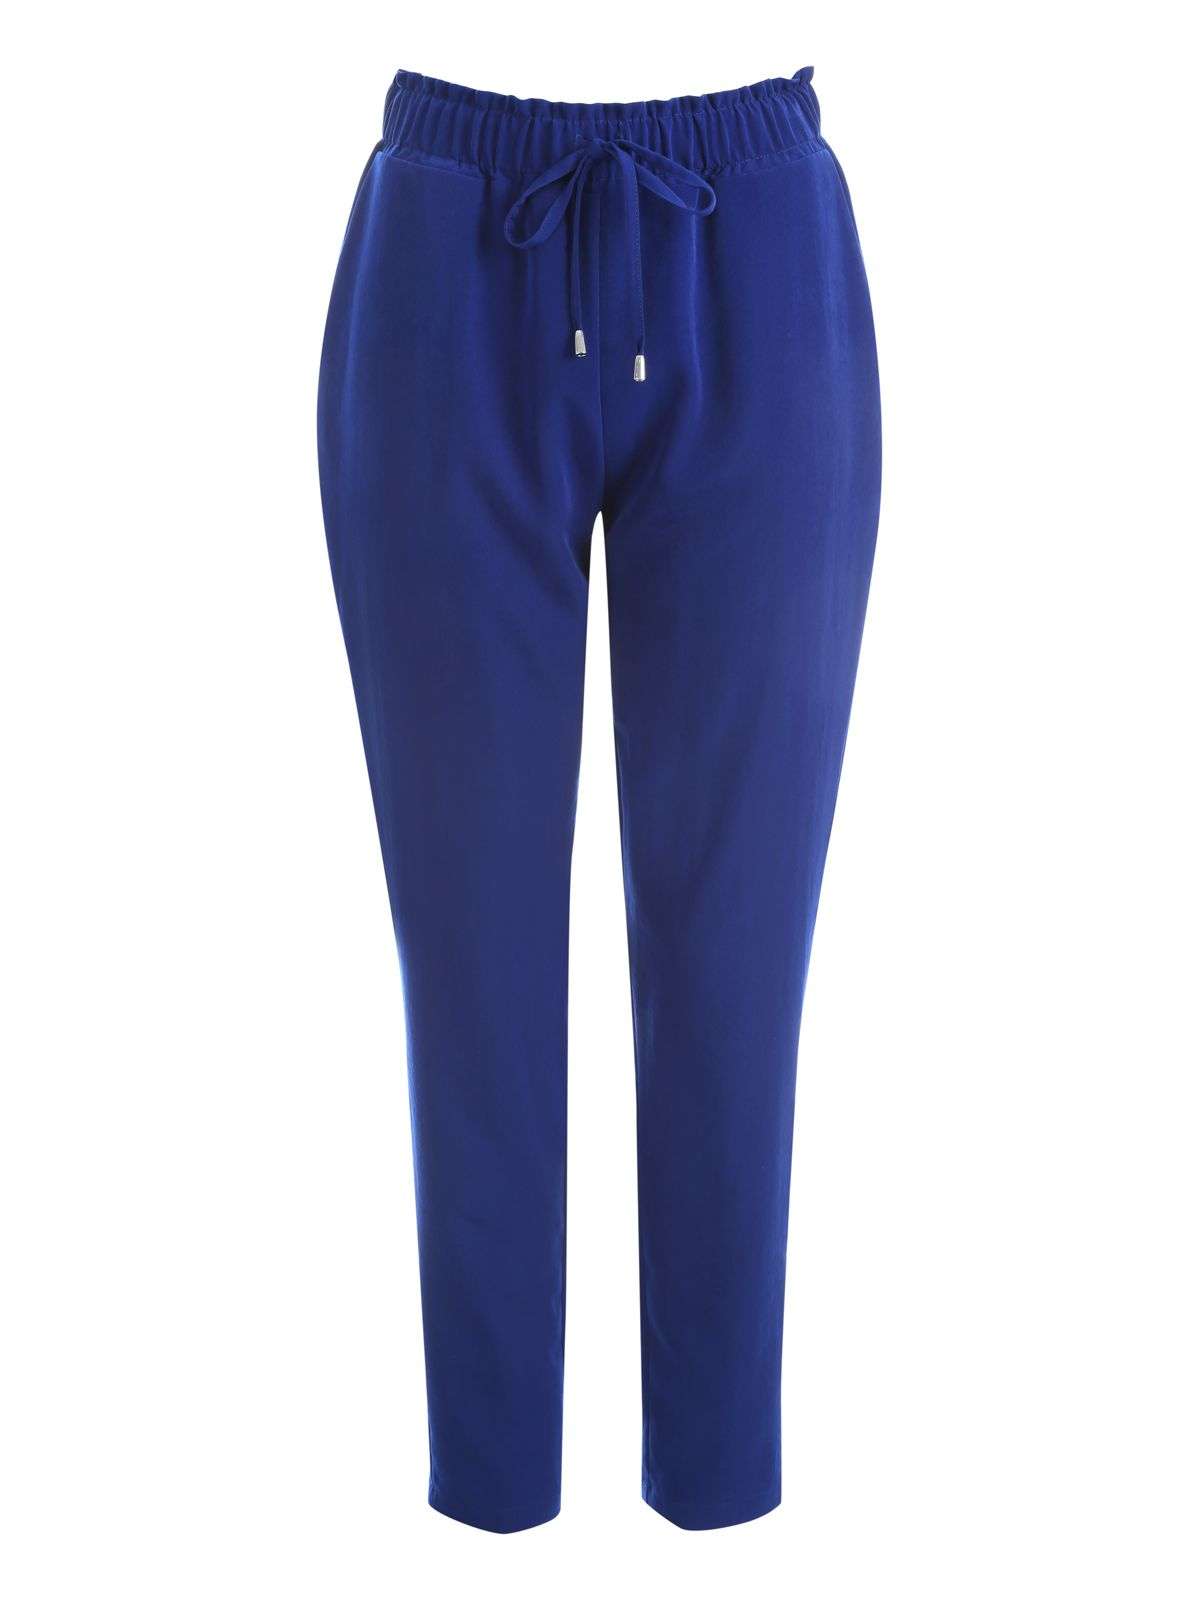 Jane Norman Electric Joggers, Blue